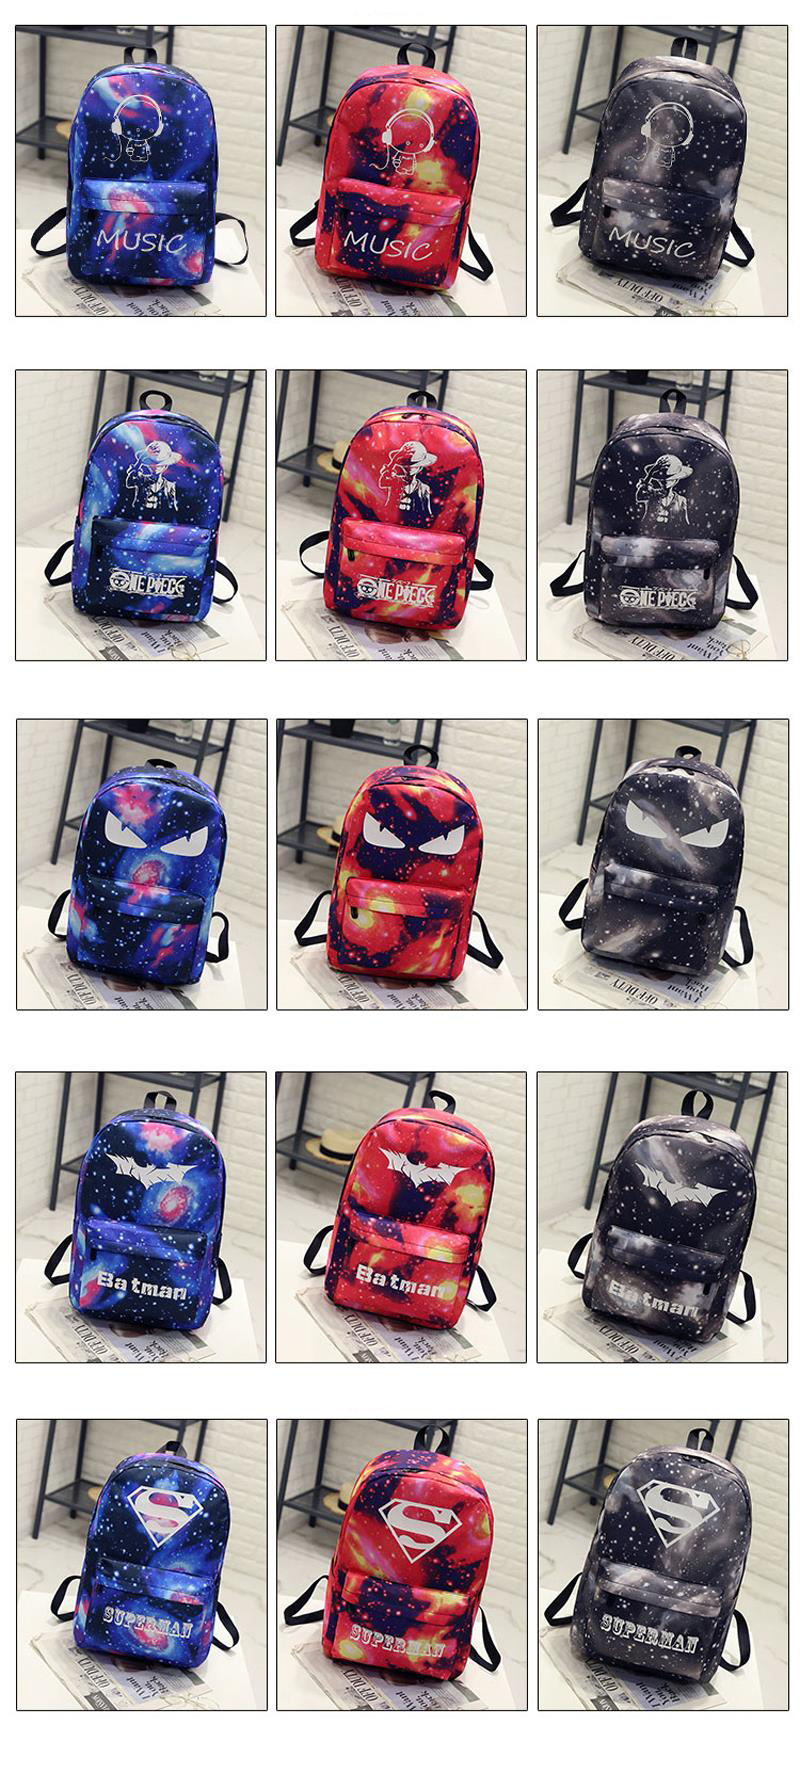 2339e65b3d09 BONAMIE Night Light Cool Backpack Music Boy Backpacks Luminous ...